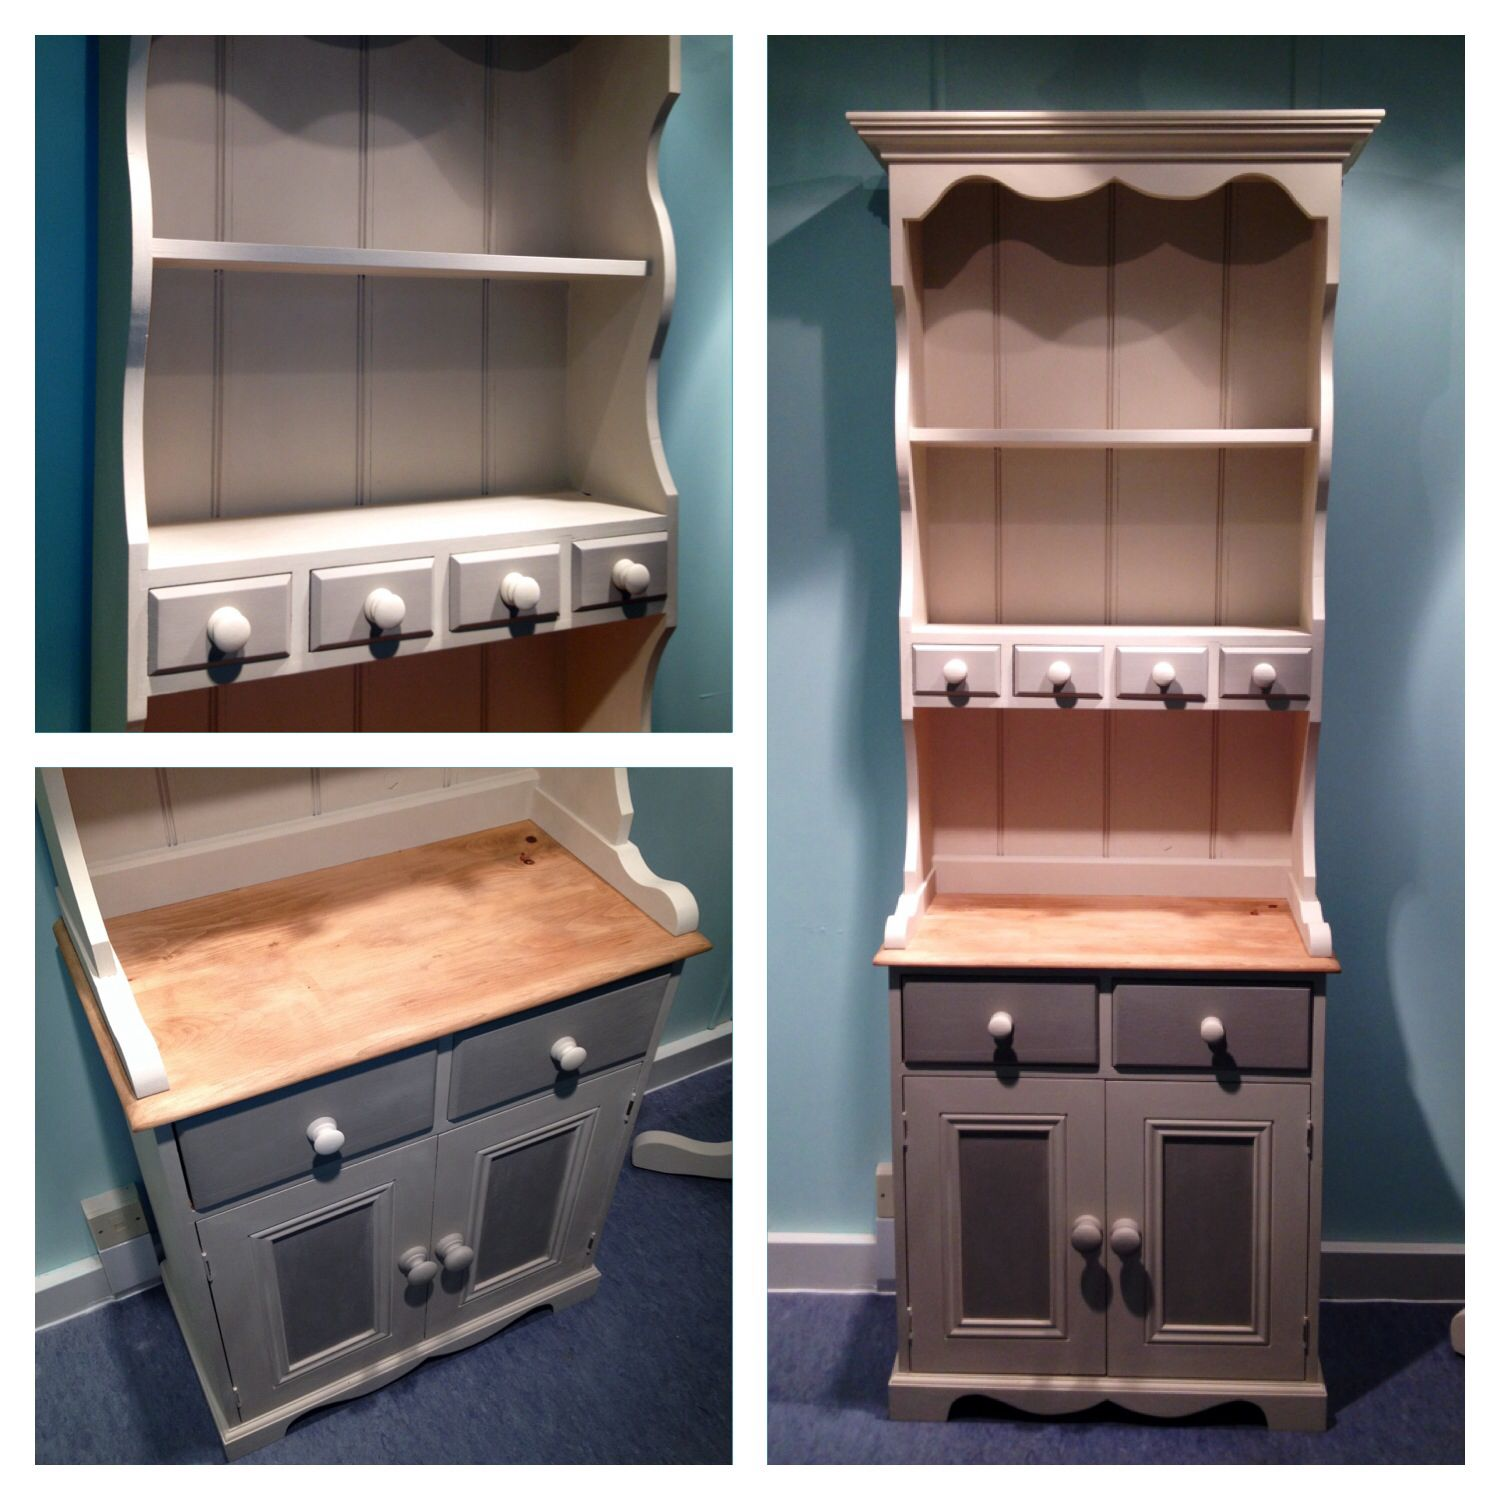 The Perfect Size Welsh Dresser in Autentico Chalk Paint Cocos & White Pepper